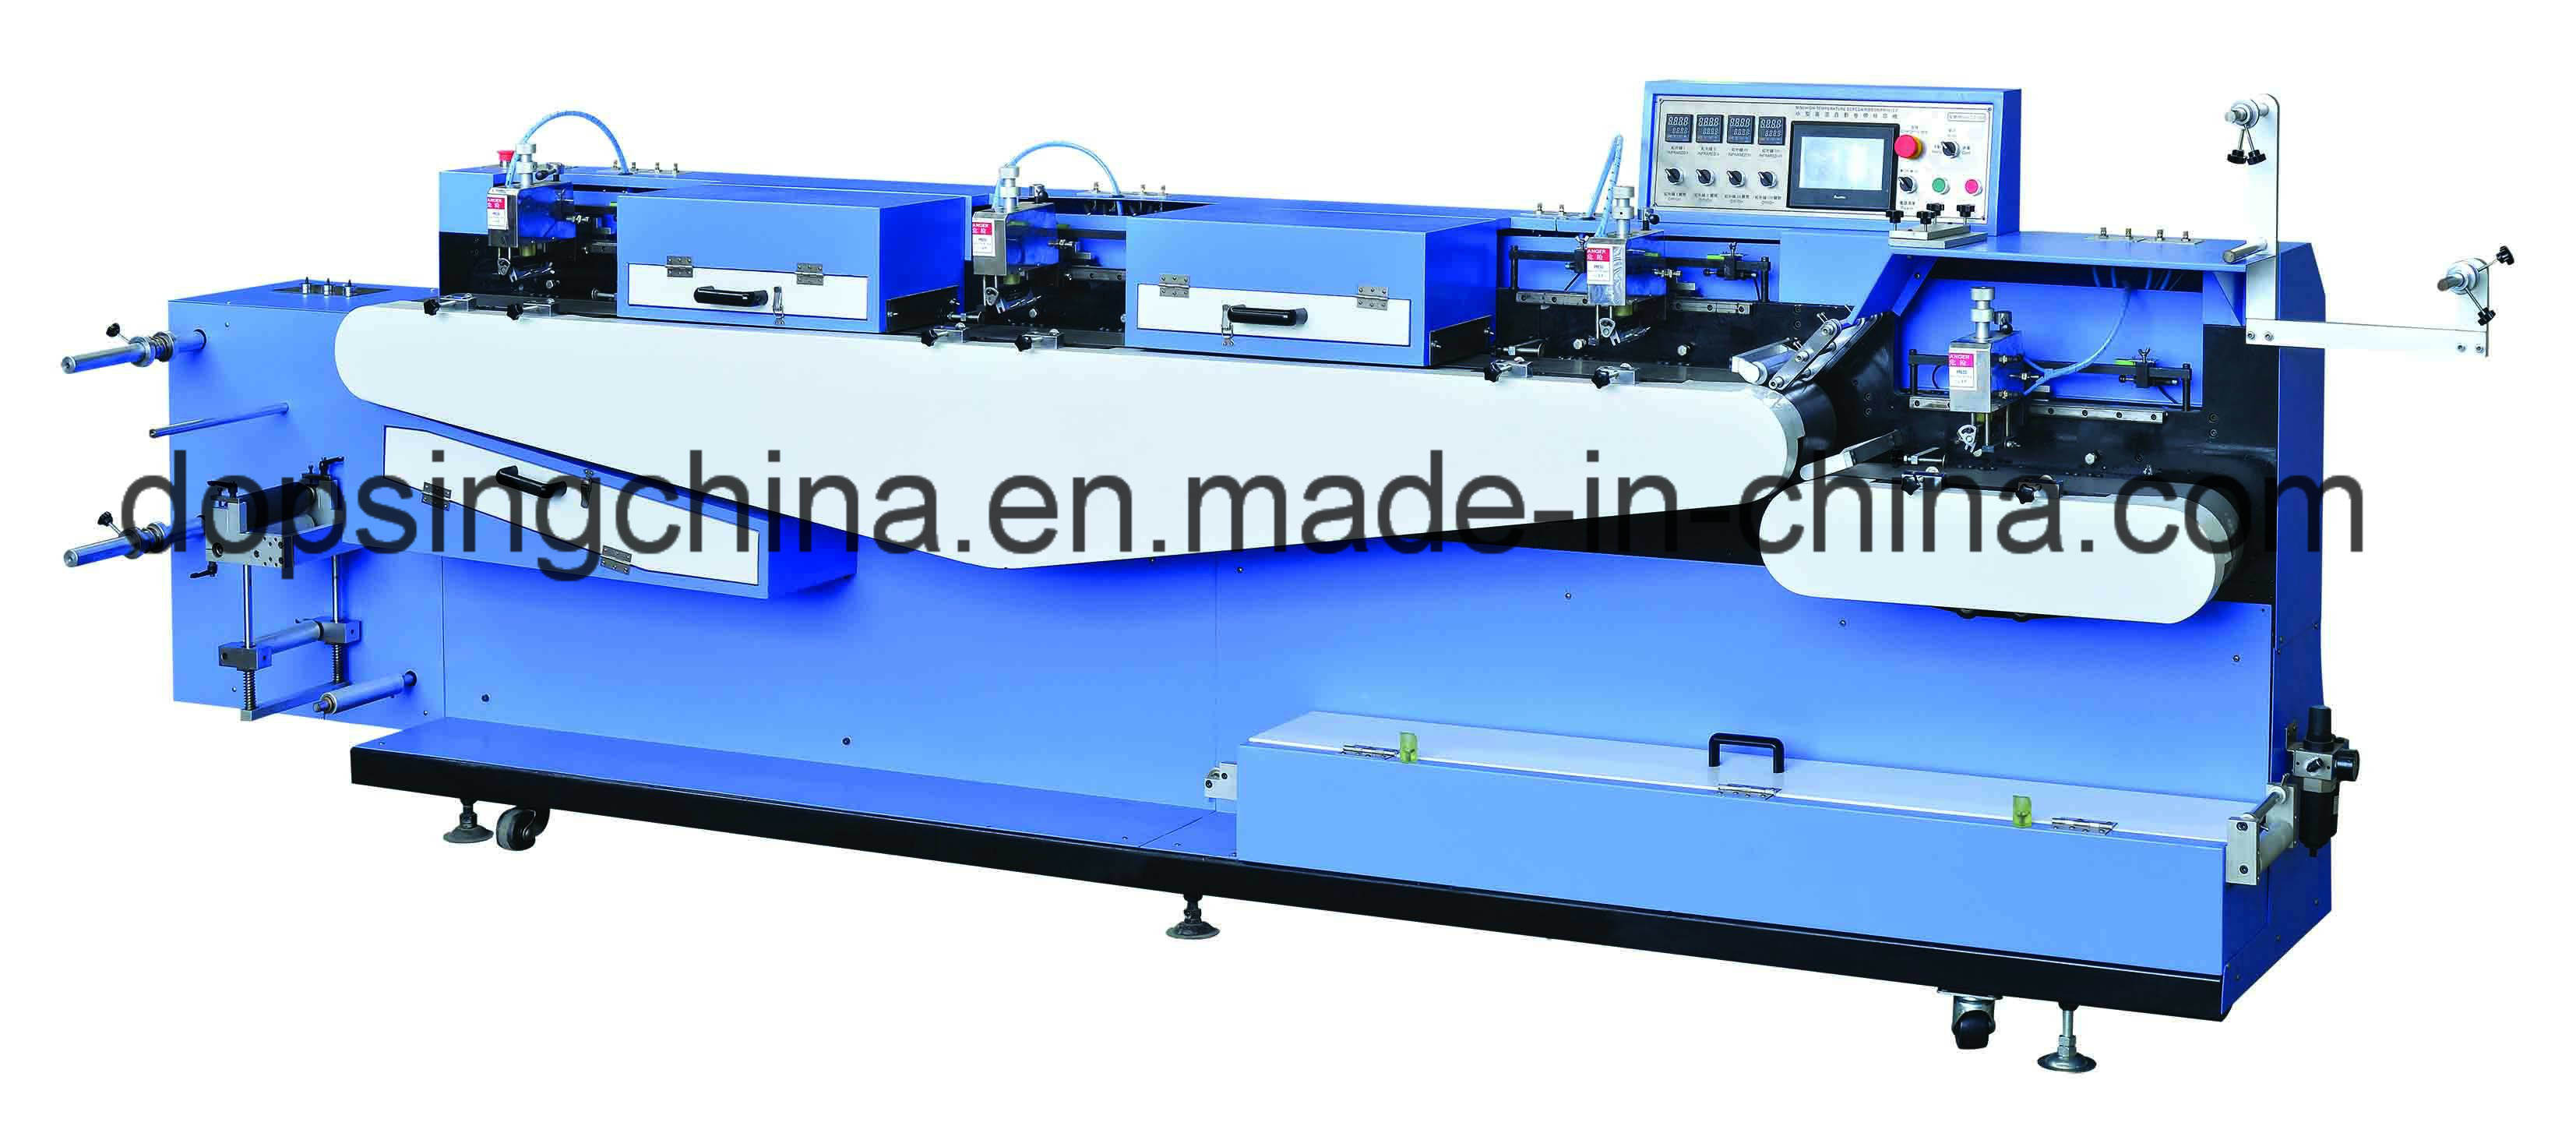 PriceList for 3 Colors Garment Label Screen Printing Machine -